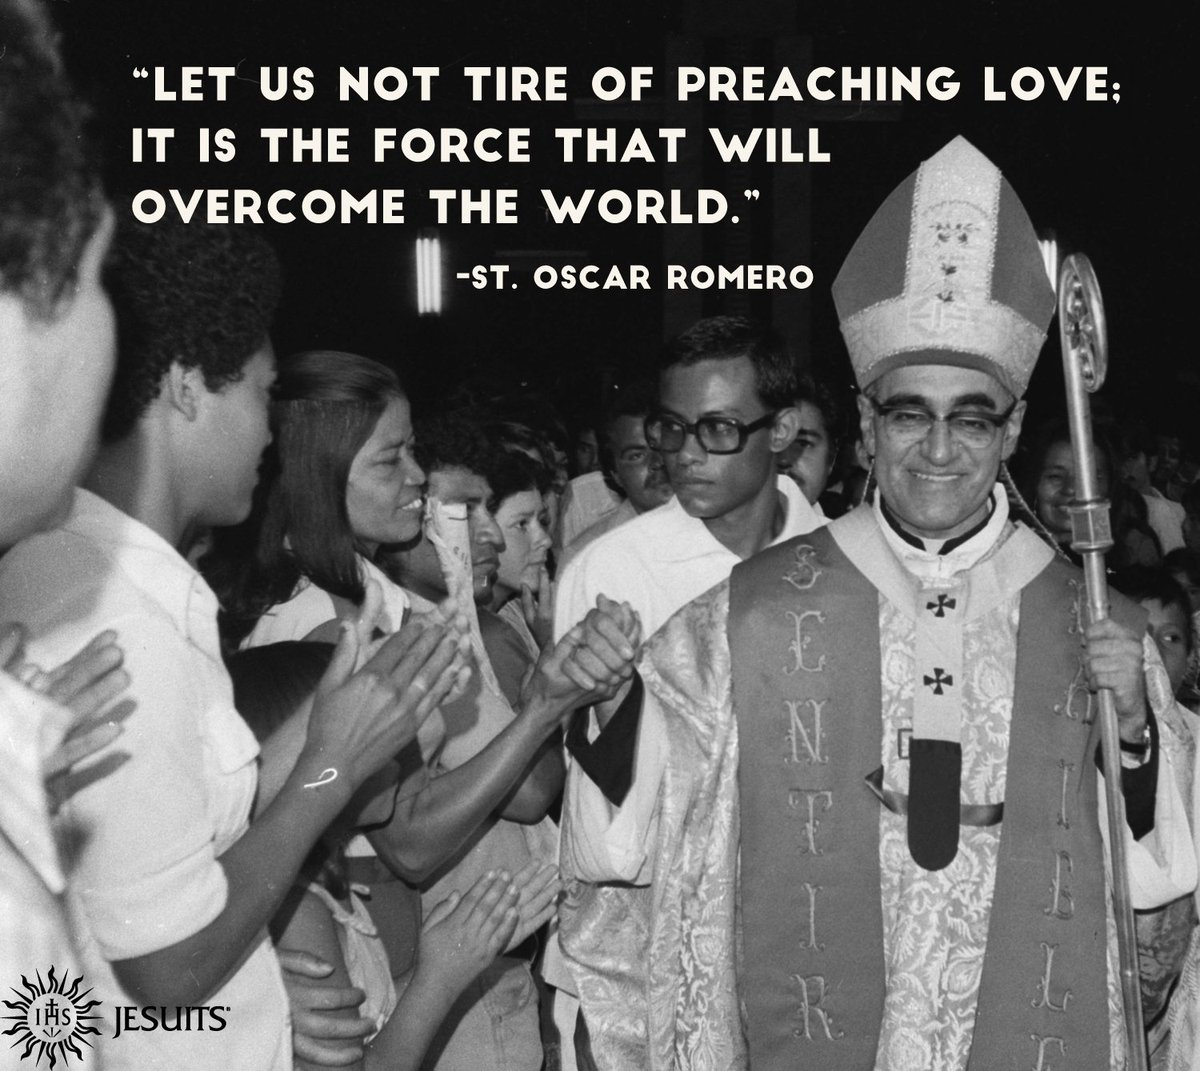 """""""Let us not tire of preaching love; it is the force that will overcome the world."""" -St. Oscar #Romero<br>http://pic.twitter.com/dO13vH4mVH"""